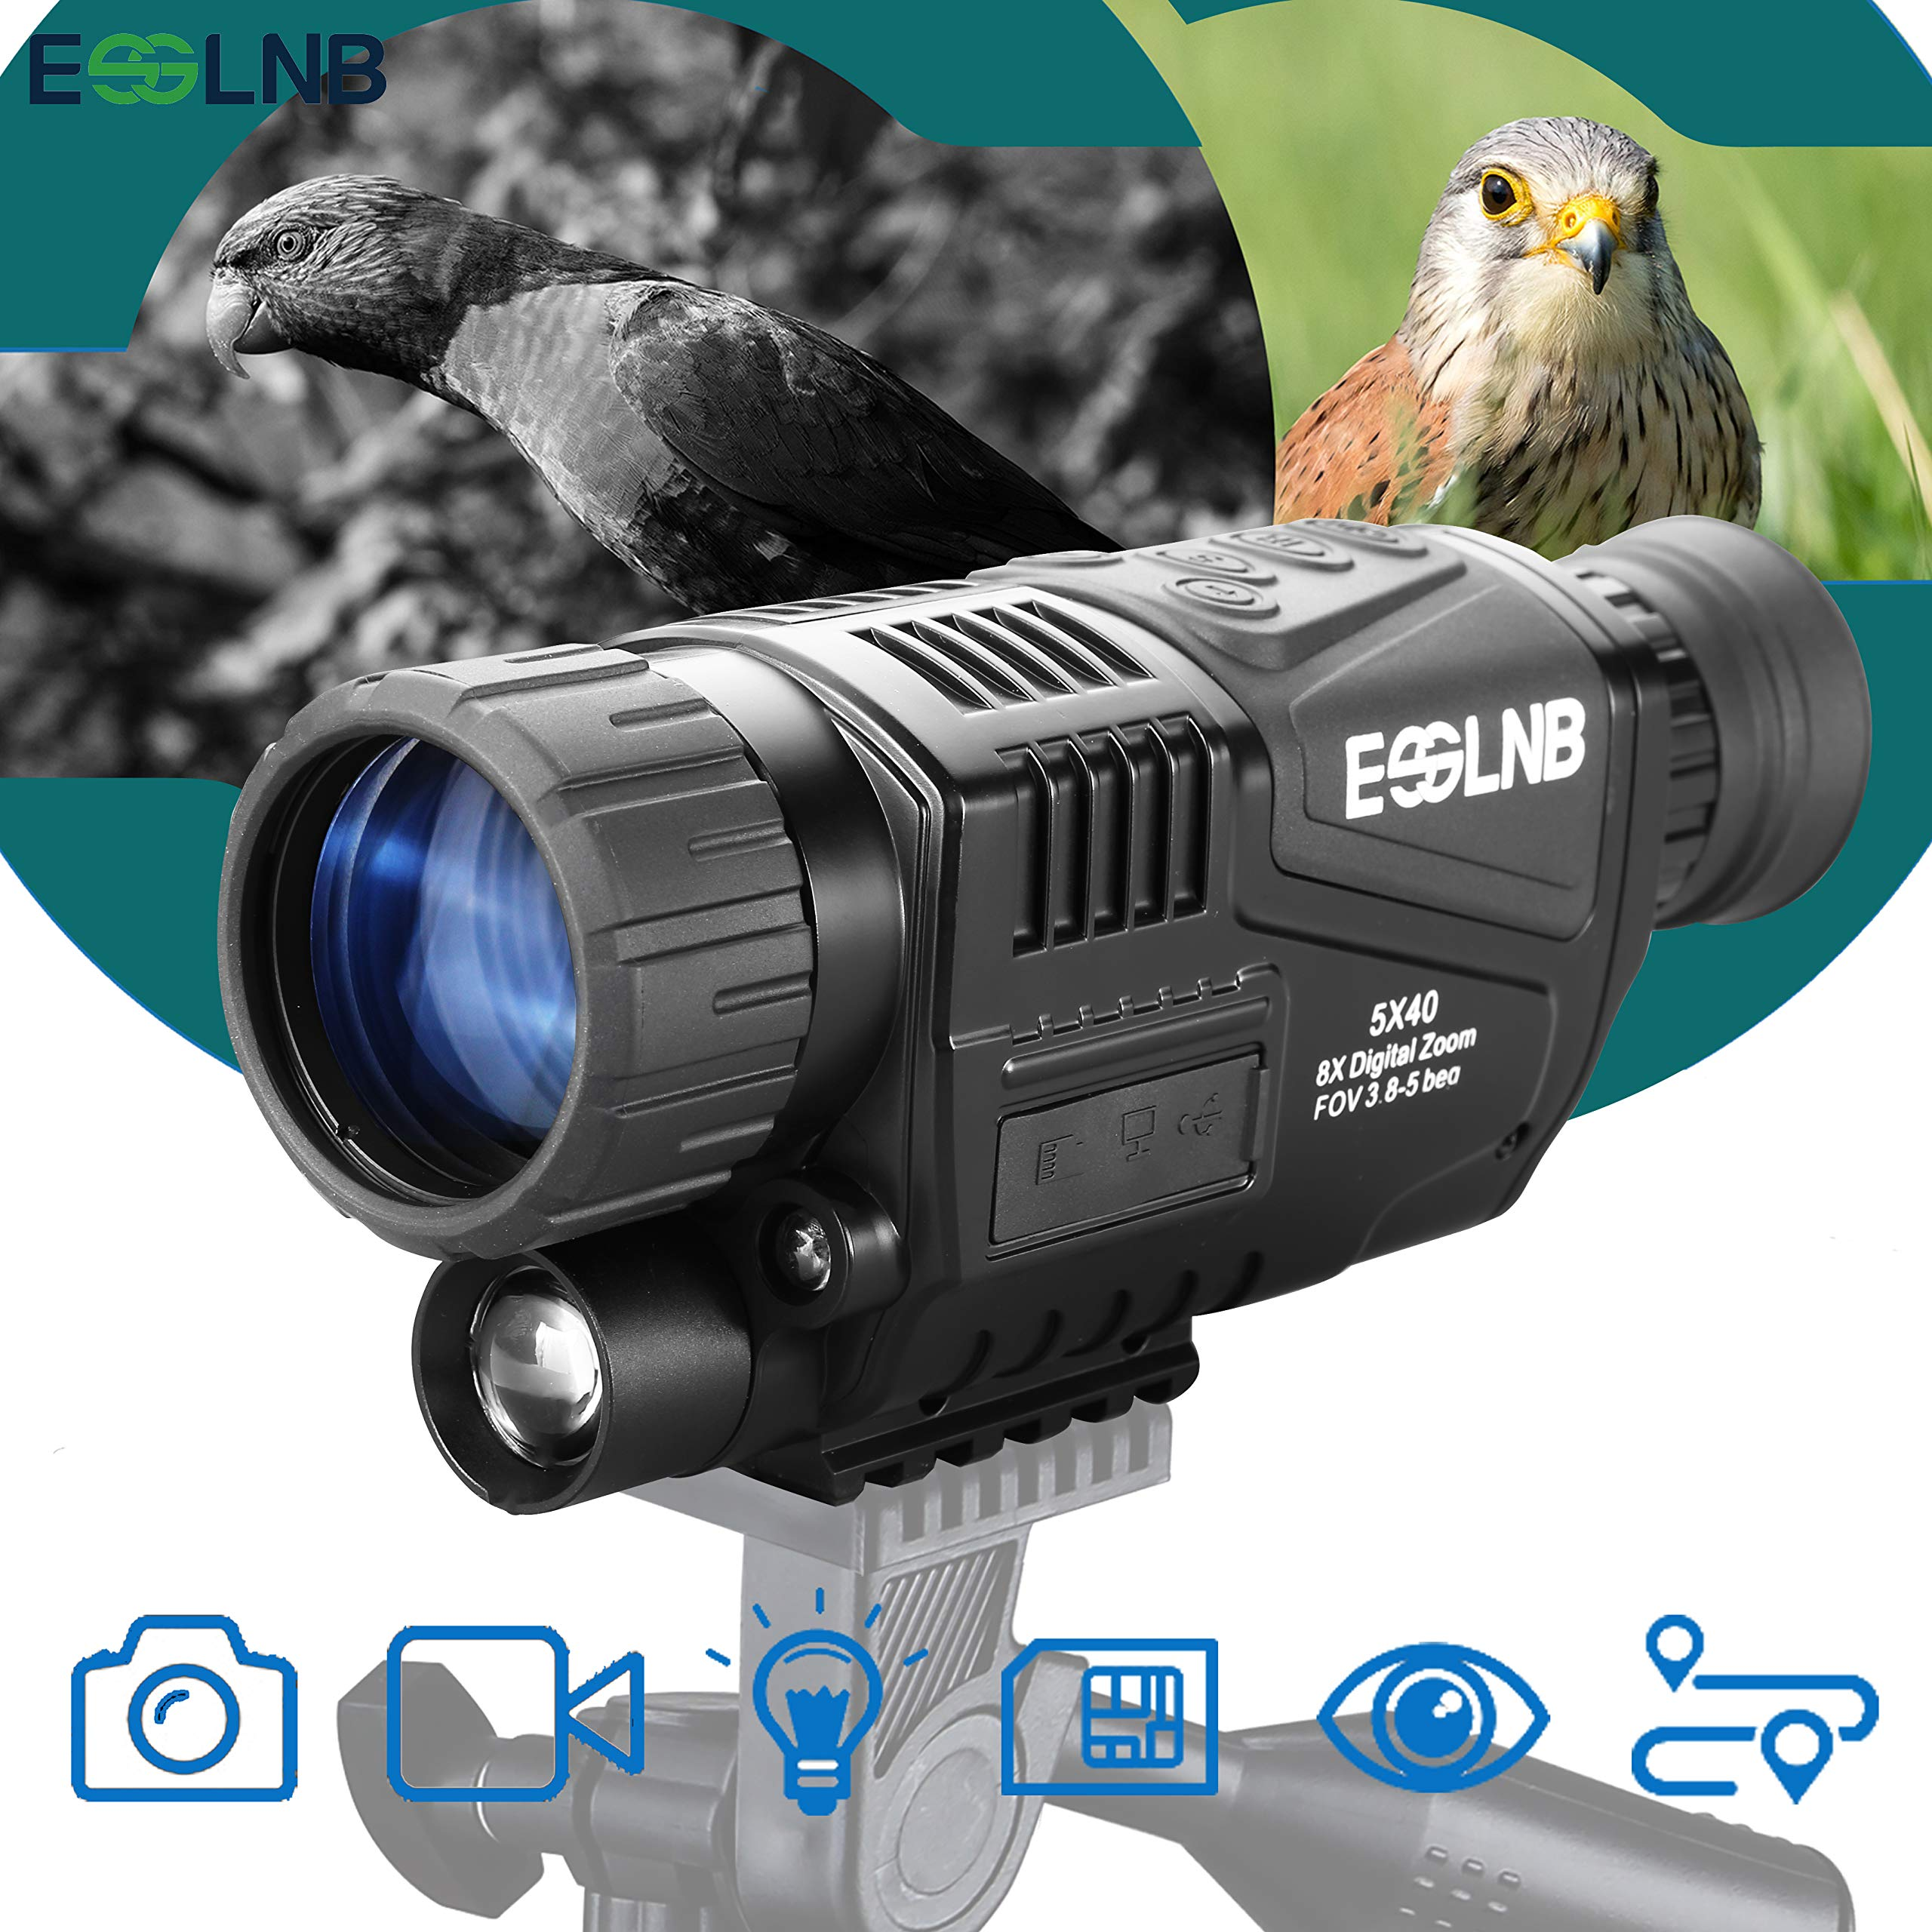 ESSLNB Night Vision Monocular 5X40 Night Vision Infrared Scope HD Digital Vision Scope Take Photos and Video Playback 1.5'' LCD with TF Card for Hunting Security Surveilla by ESSLNB